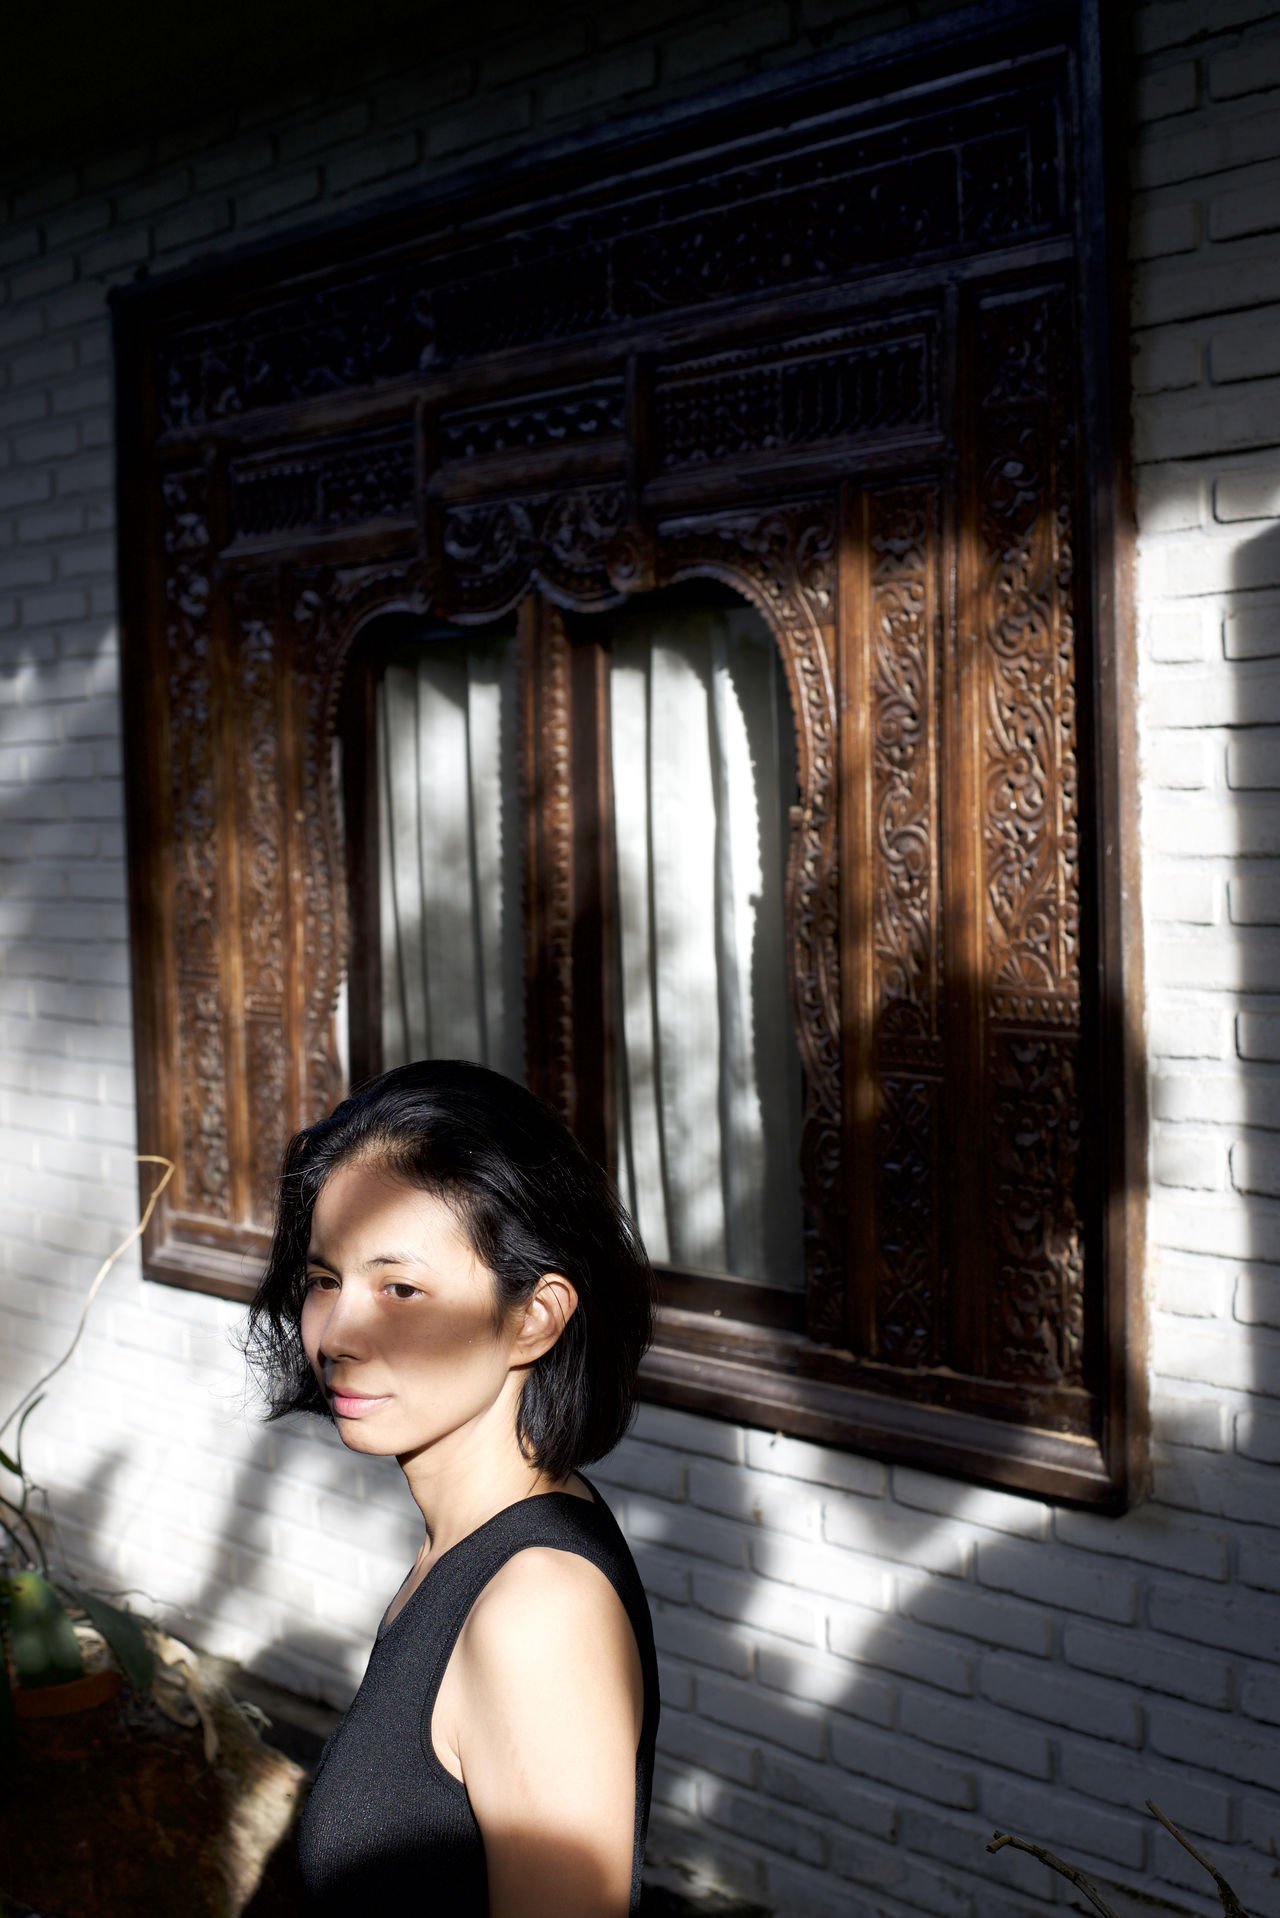 Asian Girl Bali Balinese Architecture Beautiful Woman Black Hair Brick Wall Copy Space Head And Shoulders Light And Shadow Moody Natural Light Portrait Place Of Heart Portrait Of A Woman The Portraitist - 2017 EyeEm Awards Waist Up White Wall Window